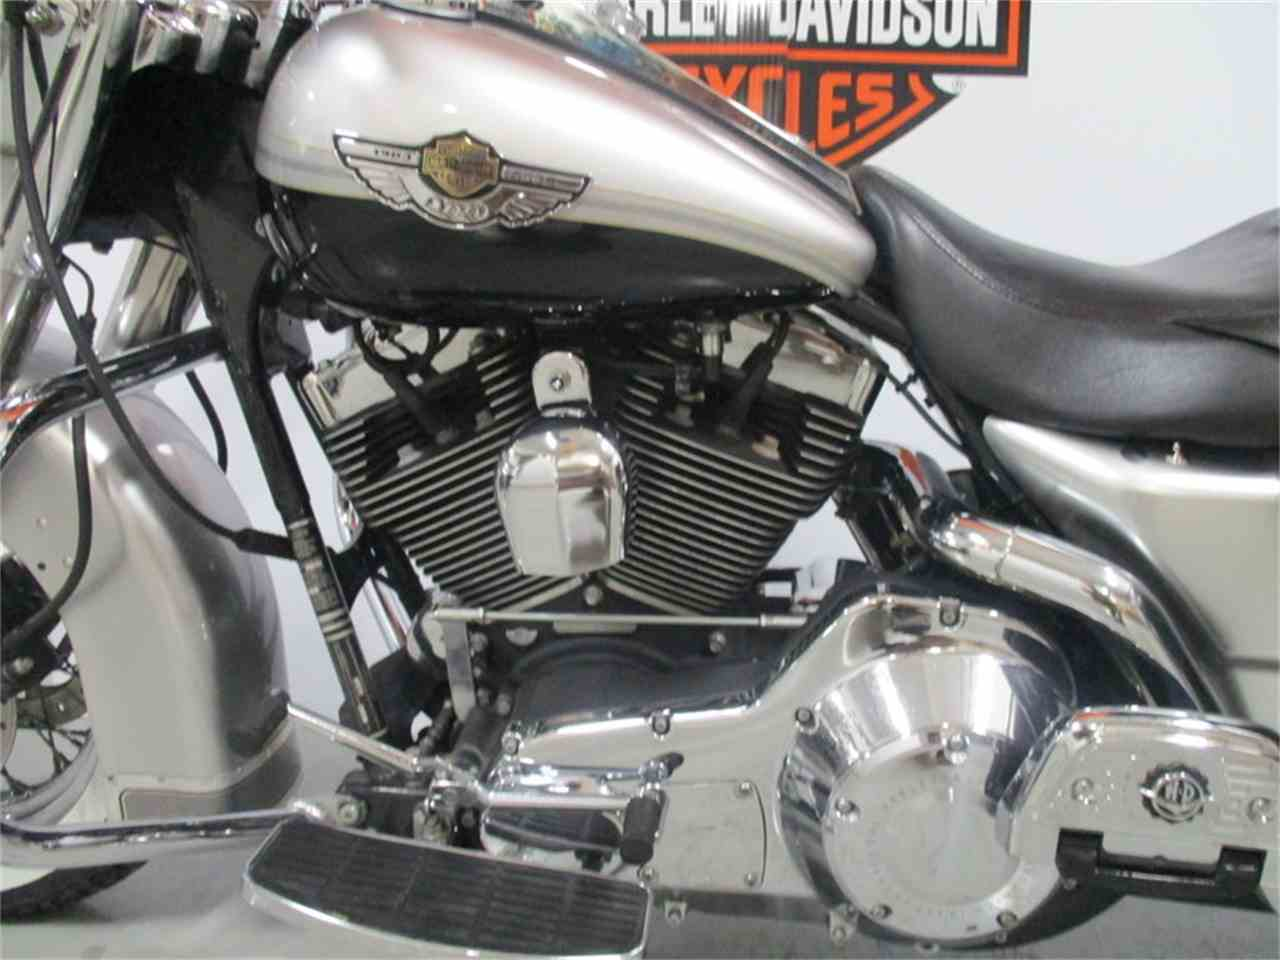 Large Picture of '03 Harley-Davidson® FLHRC - Road King® Classic located in Wisconsin - $7,734.00 Offered by Suburban Motors, Inc. - J8B5